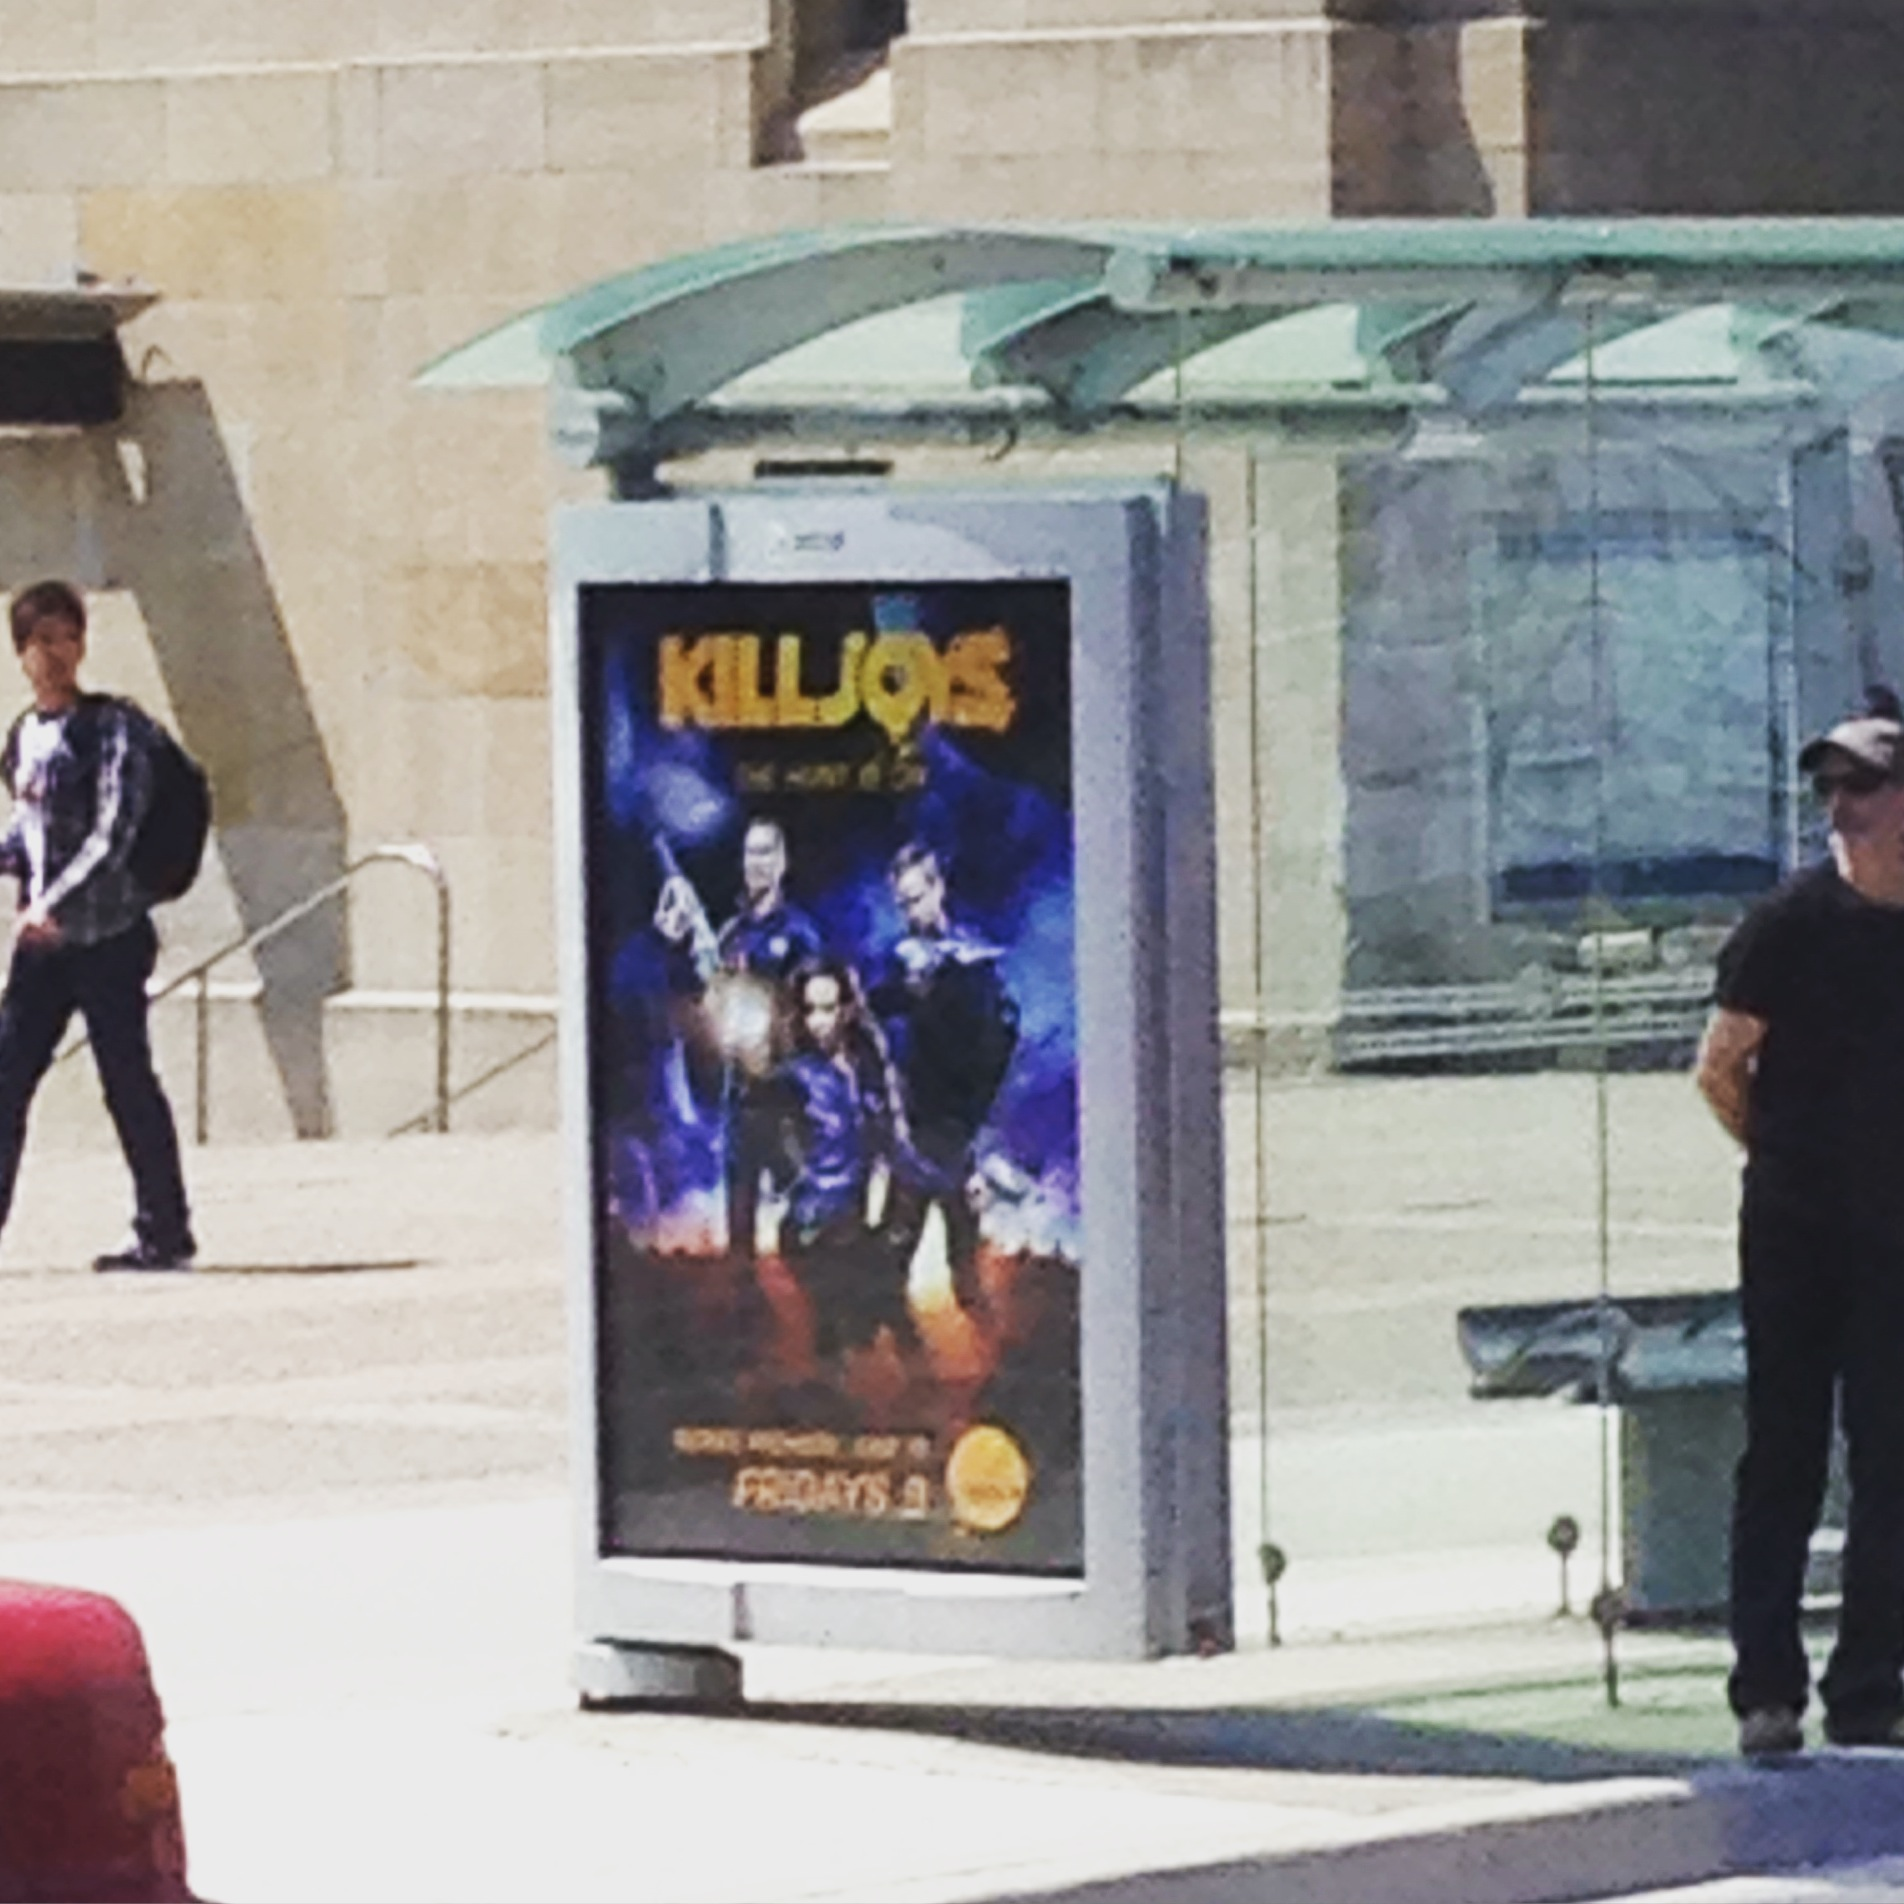 Killjoys bus shelter